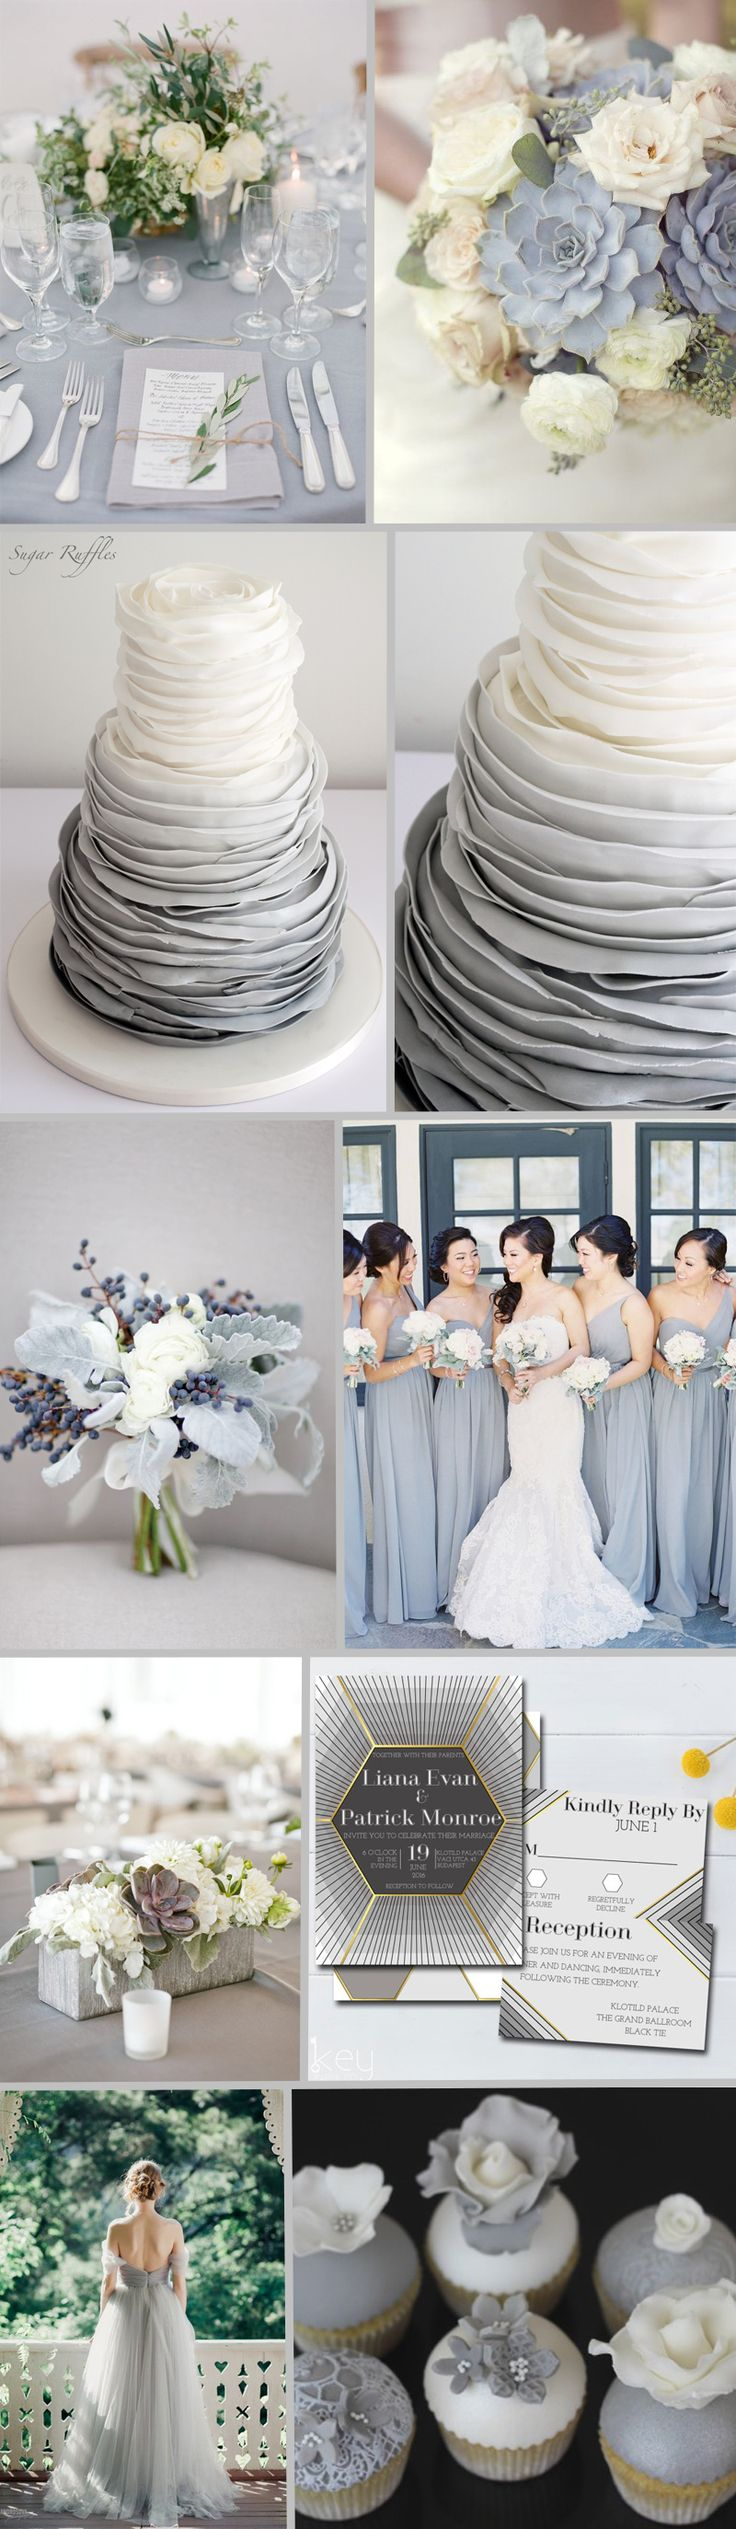 FiftyFlowers - Dove Gray Wedding Inspiration